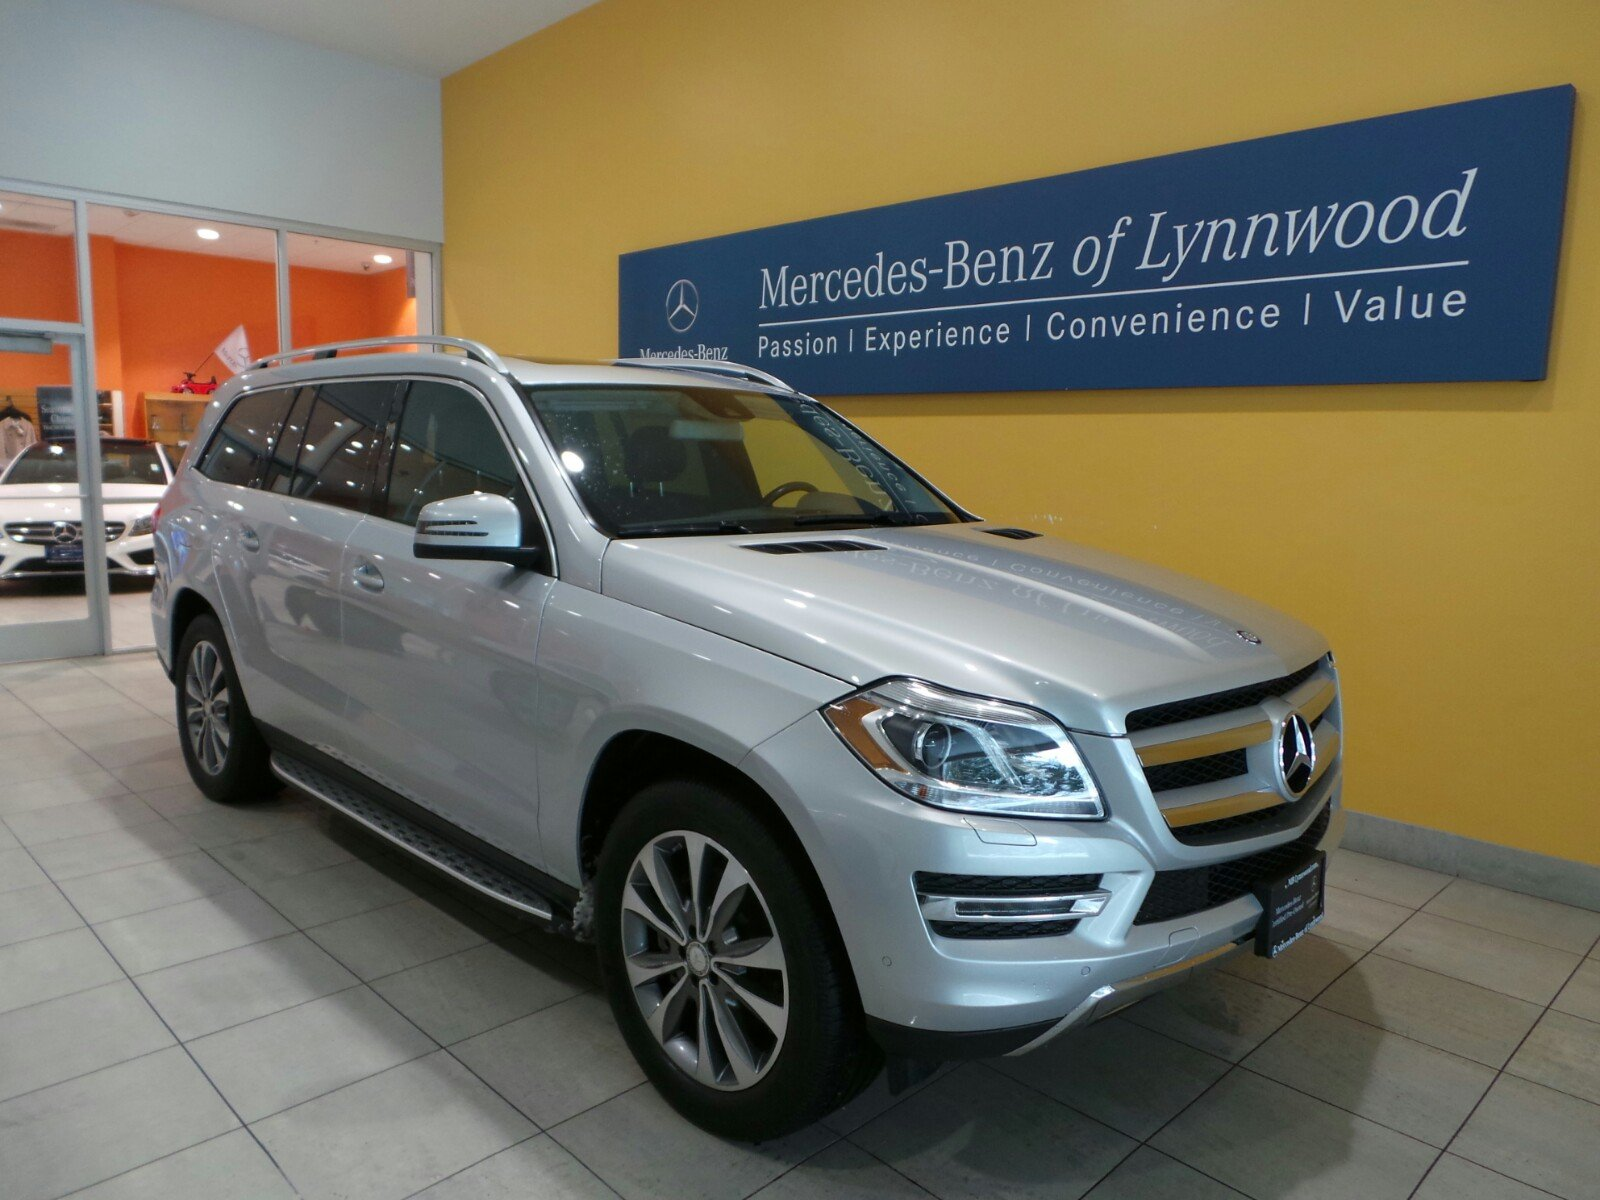 certified pre owned 2015 mercedes benz gl gl 450 suv in lynnwood l3552p mercedes benz of lynnwood. Black Bedroom Furniture Sets. Home Design Ideas